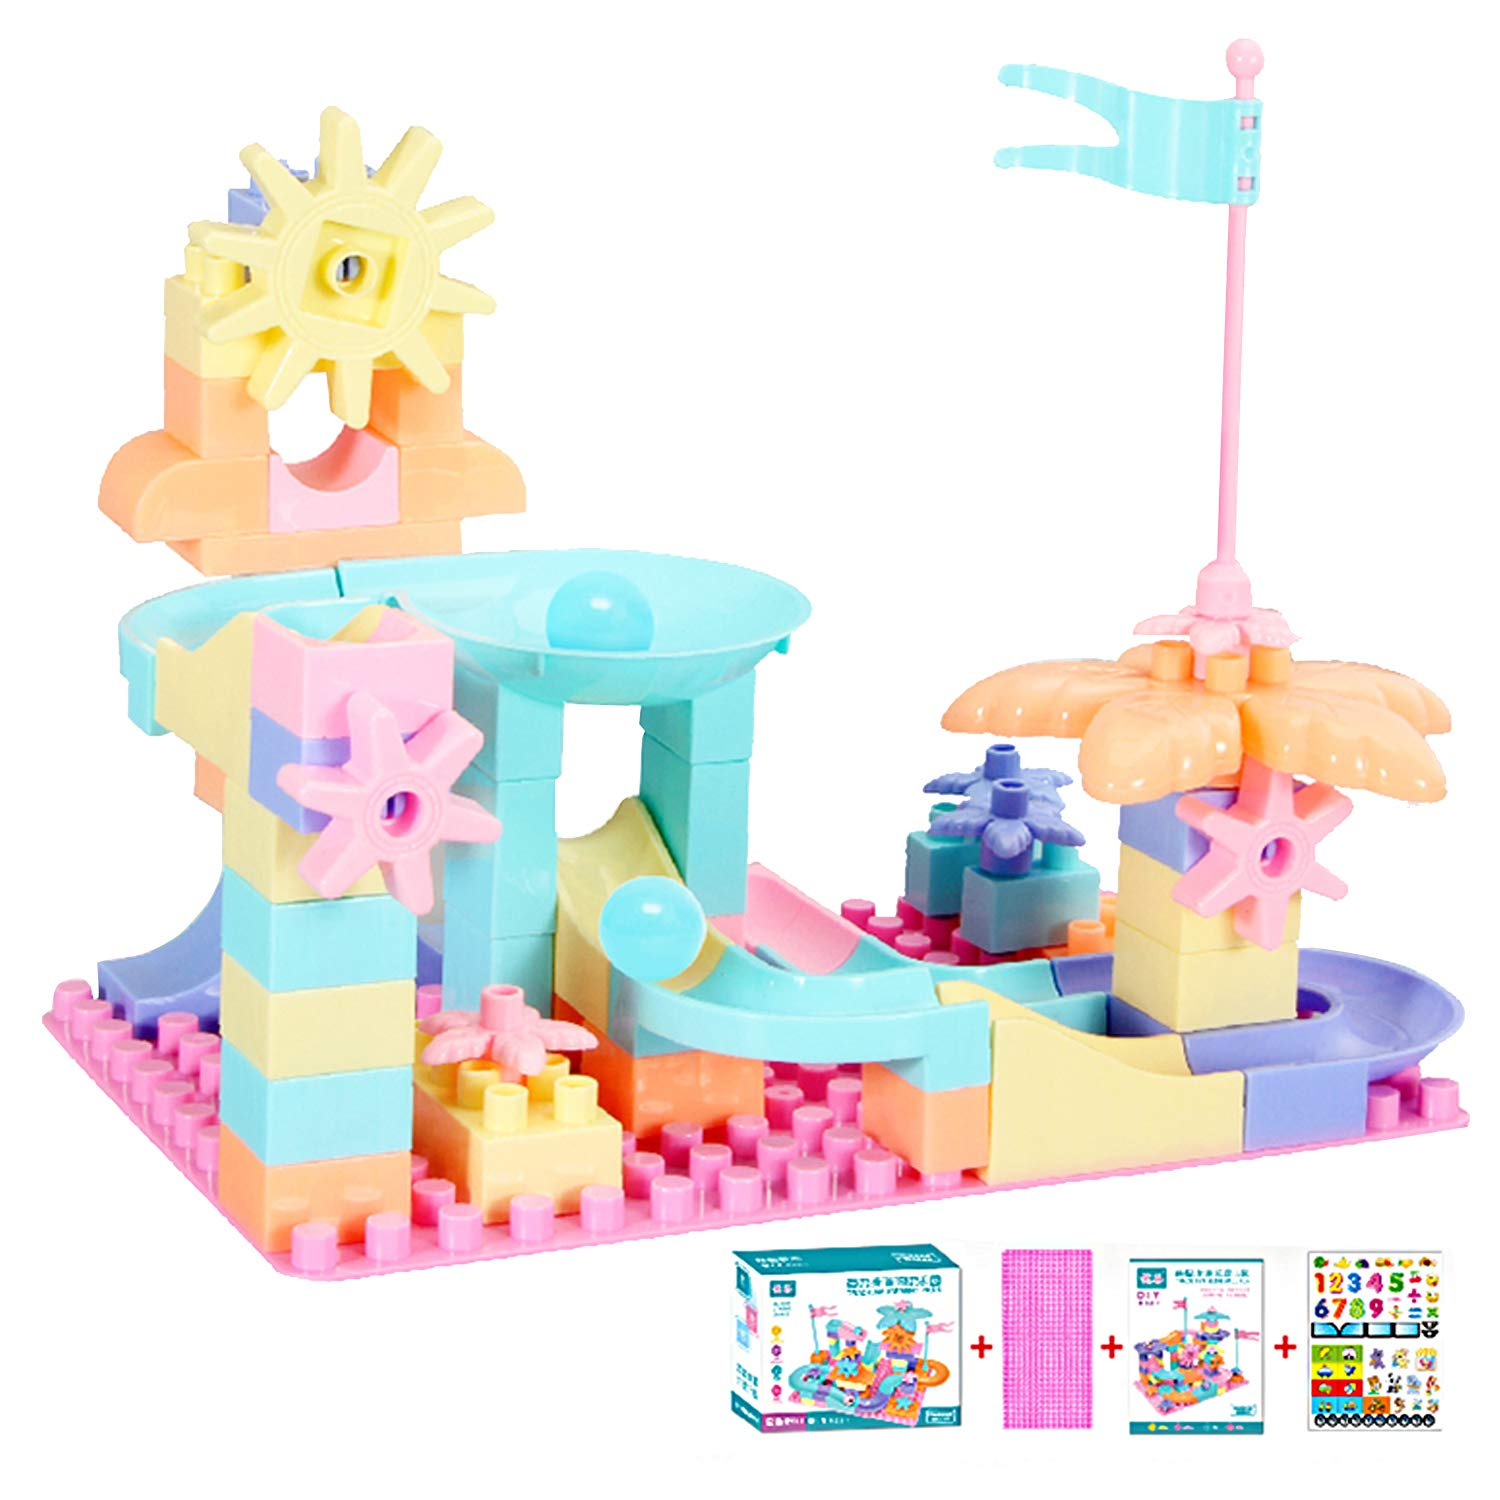 KISSKIDS 76 Piece Soft Plastic Multi Colored Building Block Set,with Sliding Track,Great for Kids & Toddlers,for Boys&Girls. (Macaron)